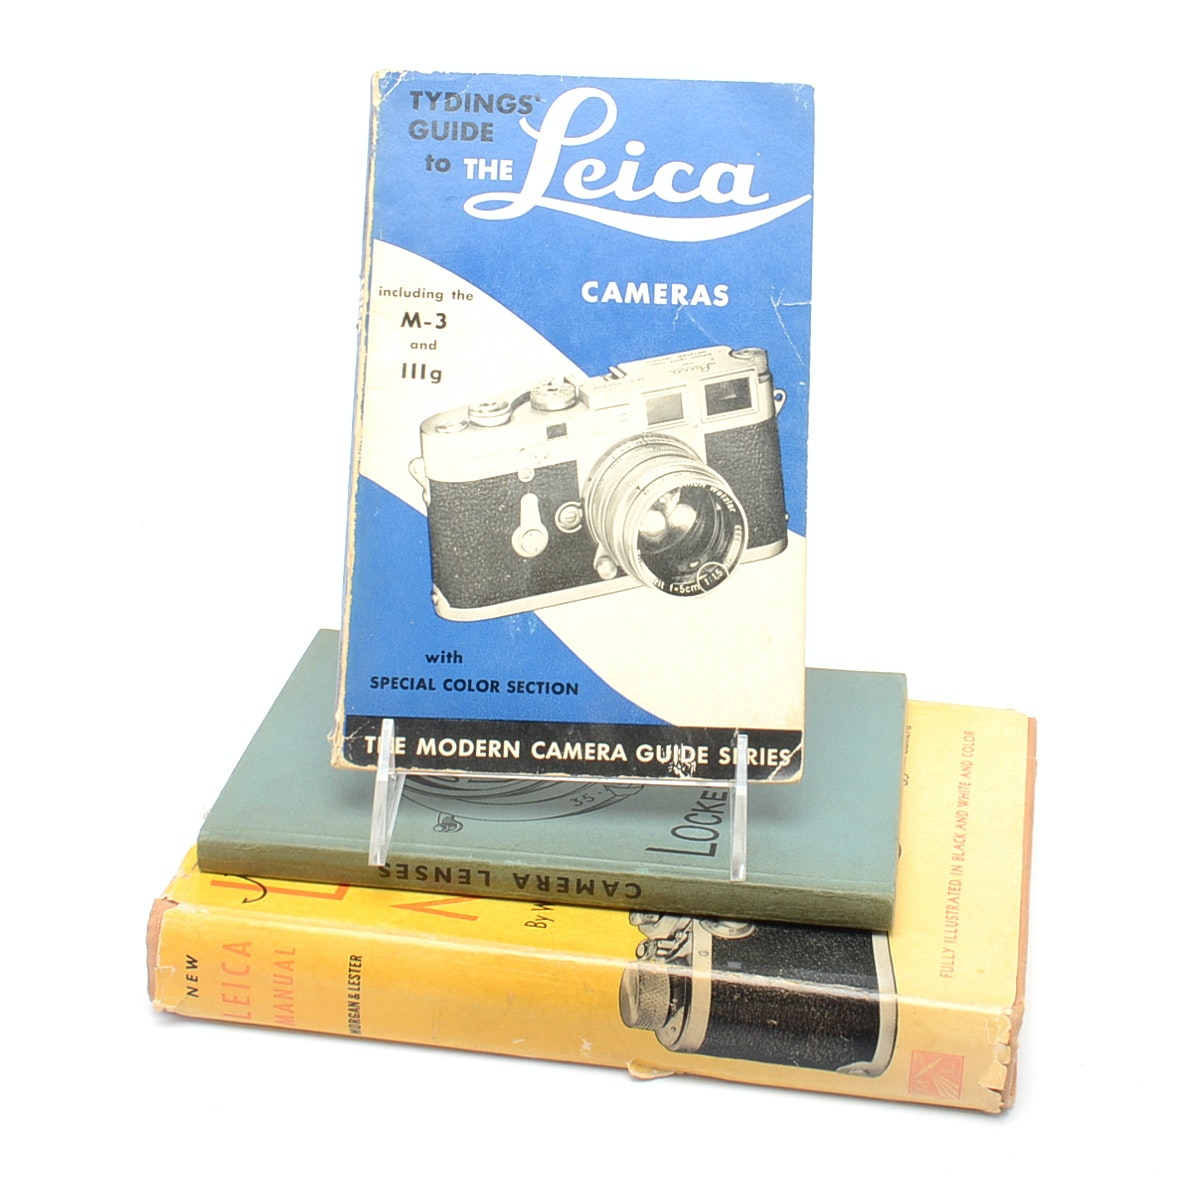 Vintage Photography Books